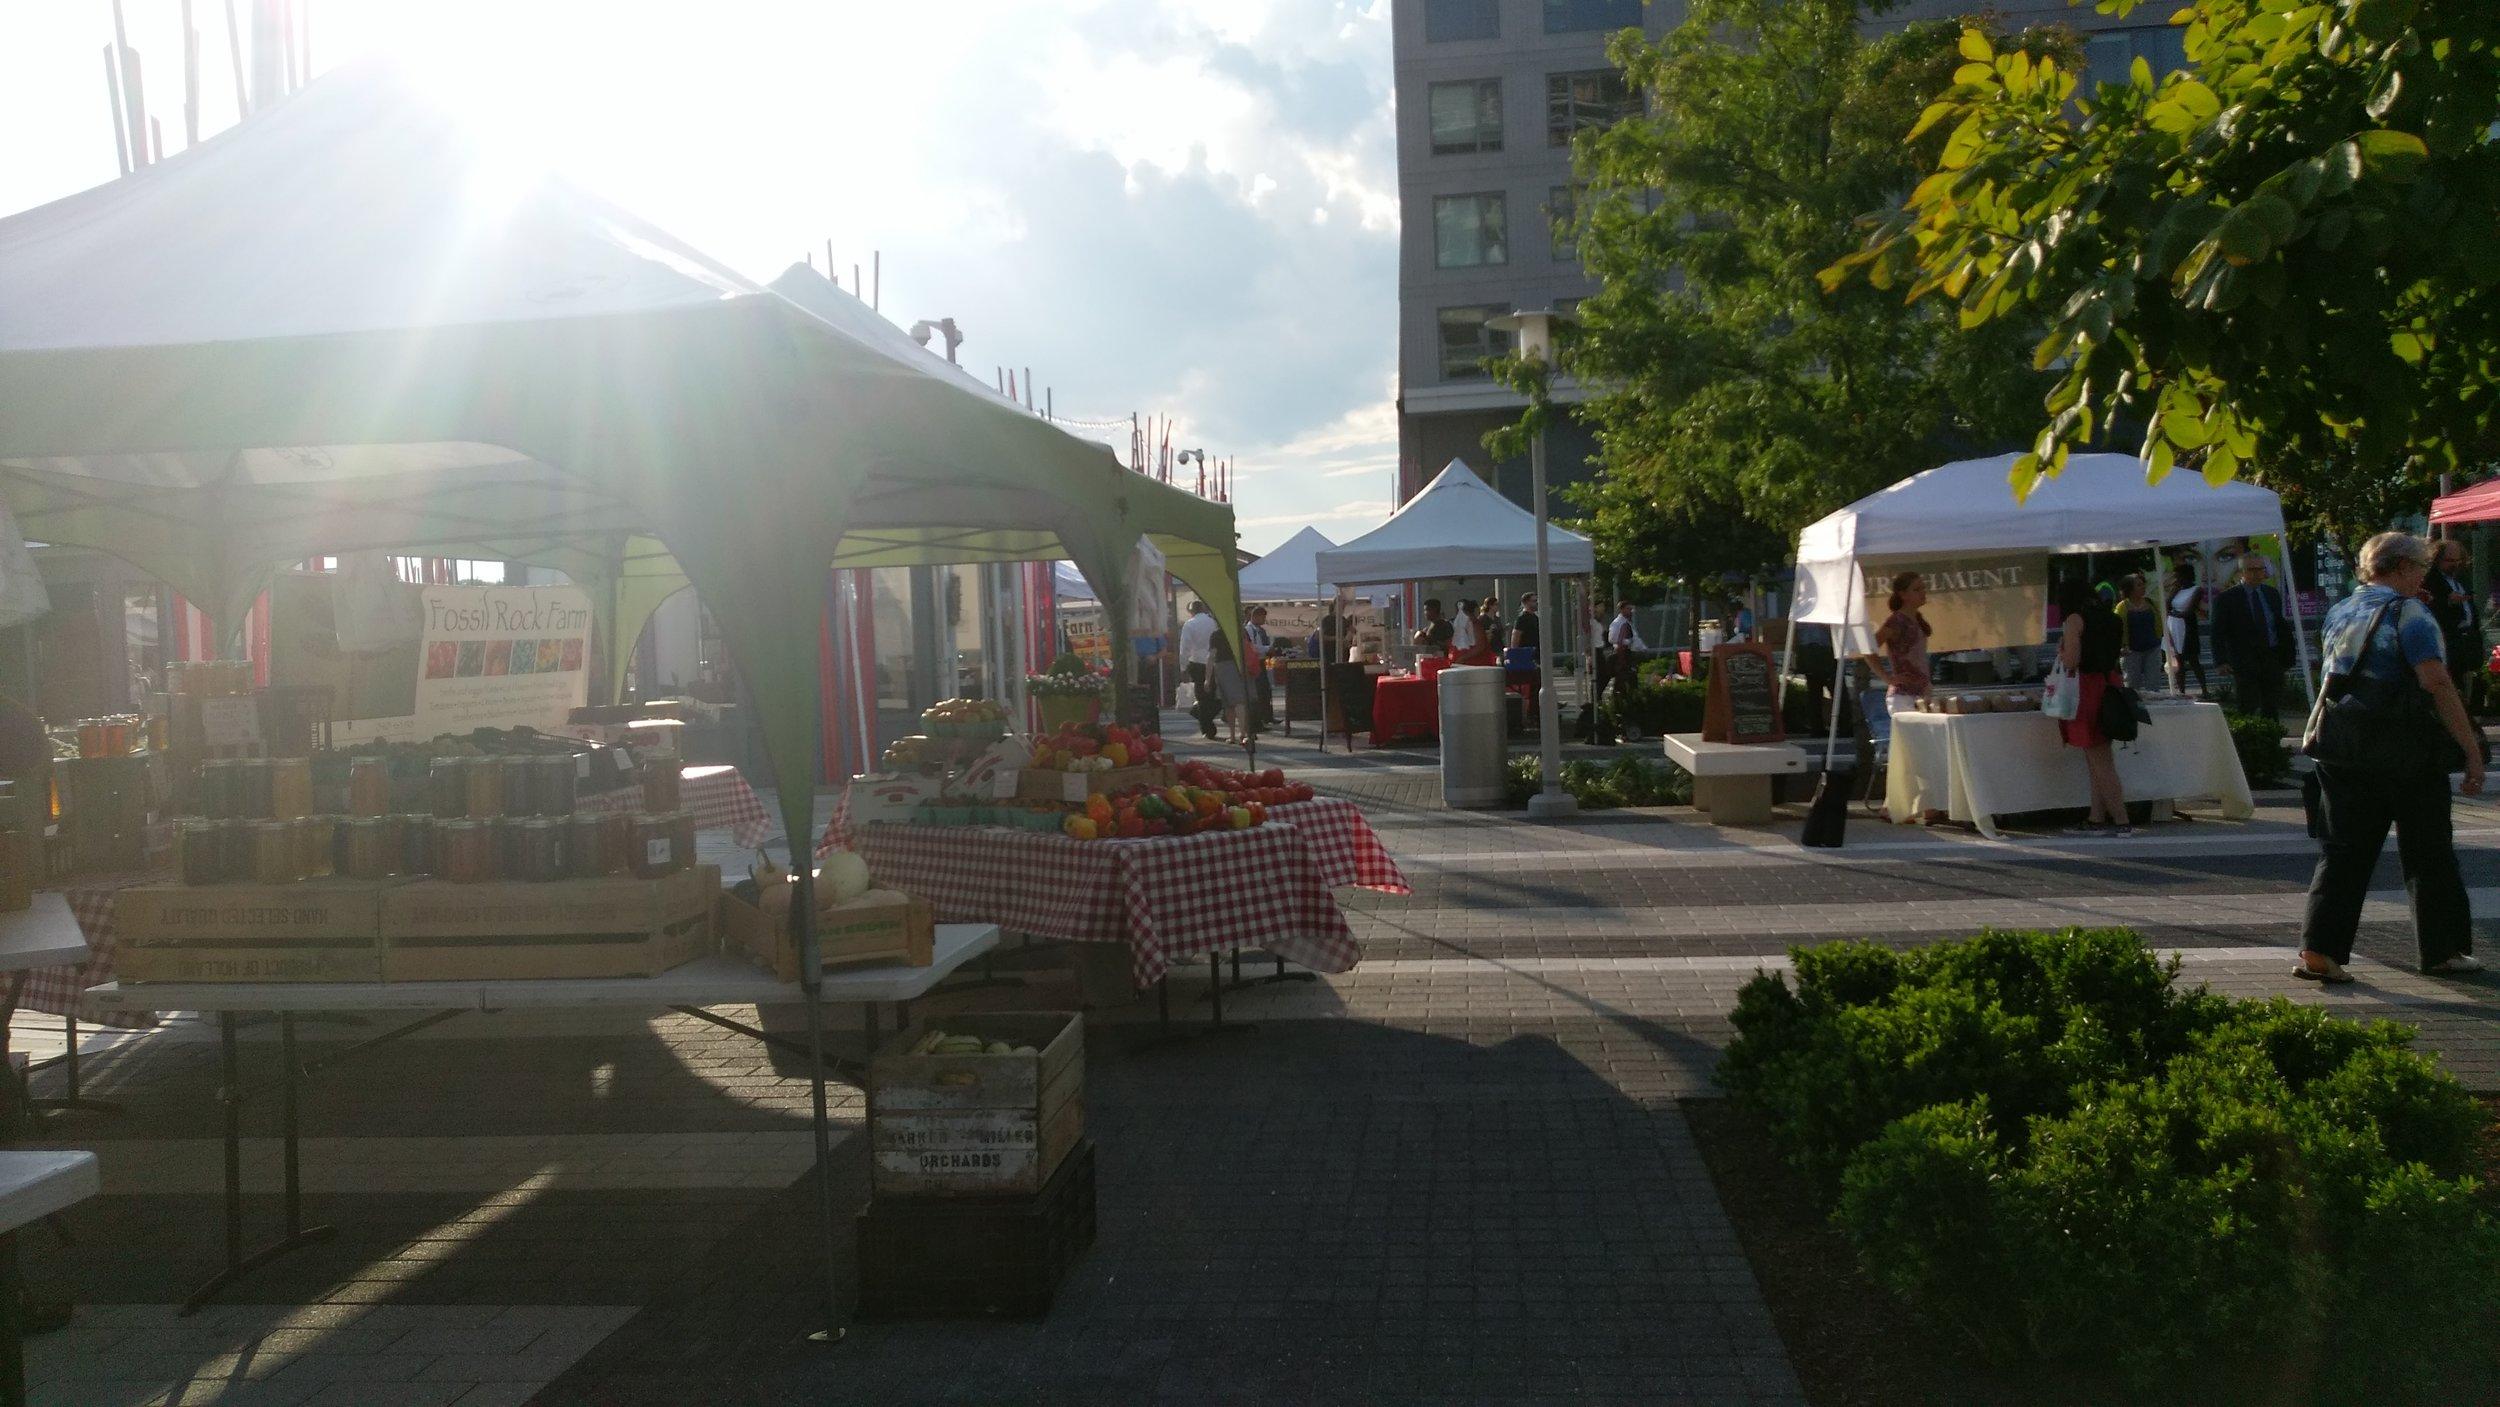 The metro stop in Reston has a farmer's market every Wednesday